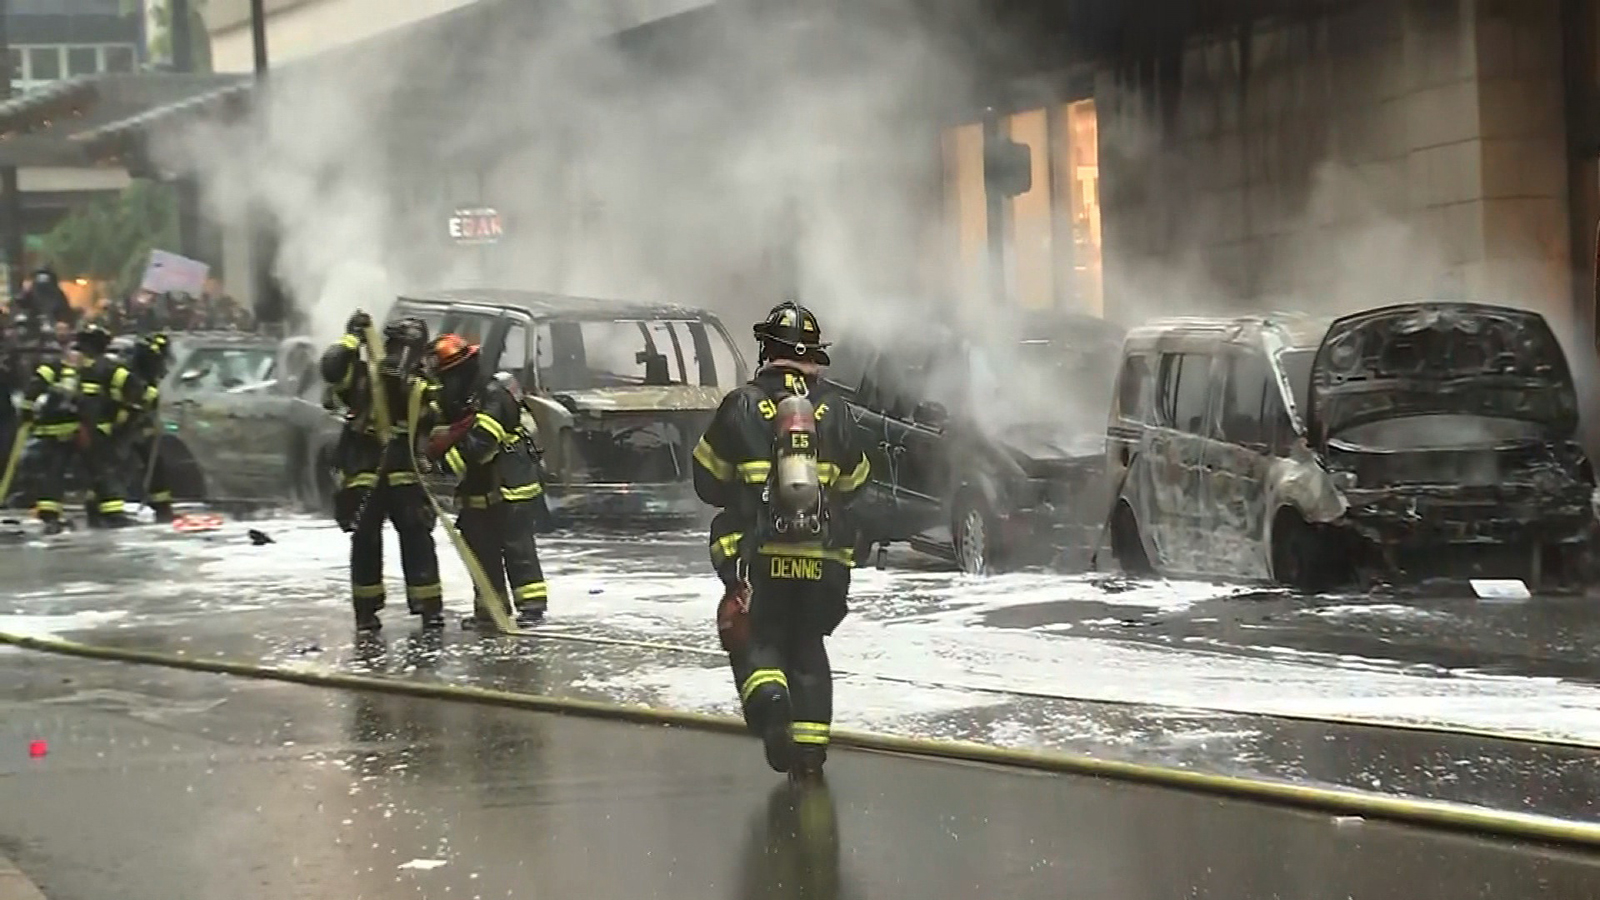 Firefighters collect the hose on the street after extinguishing car fires set by protesters in Seattle, on May 30.